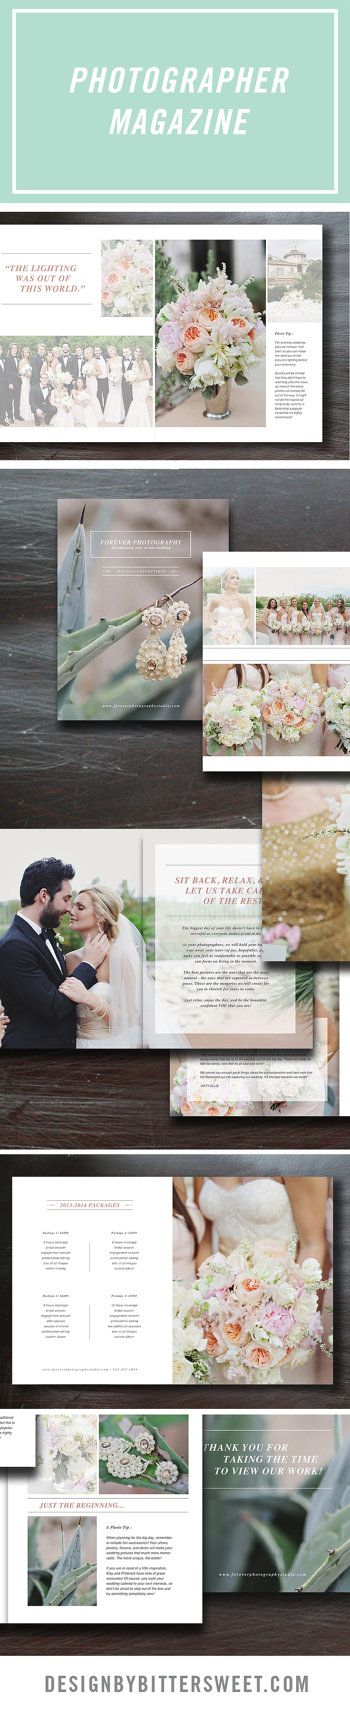 "Wedding Photography Marketing Magazine Template. Attract your ideal clients with this customizable guide. Includes 26 8.5"" X11"" pages of professionally written text complete with about page 